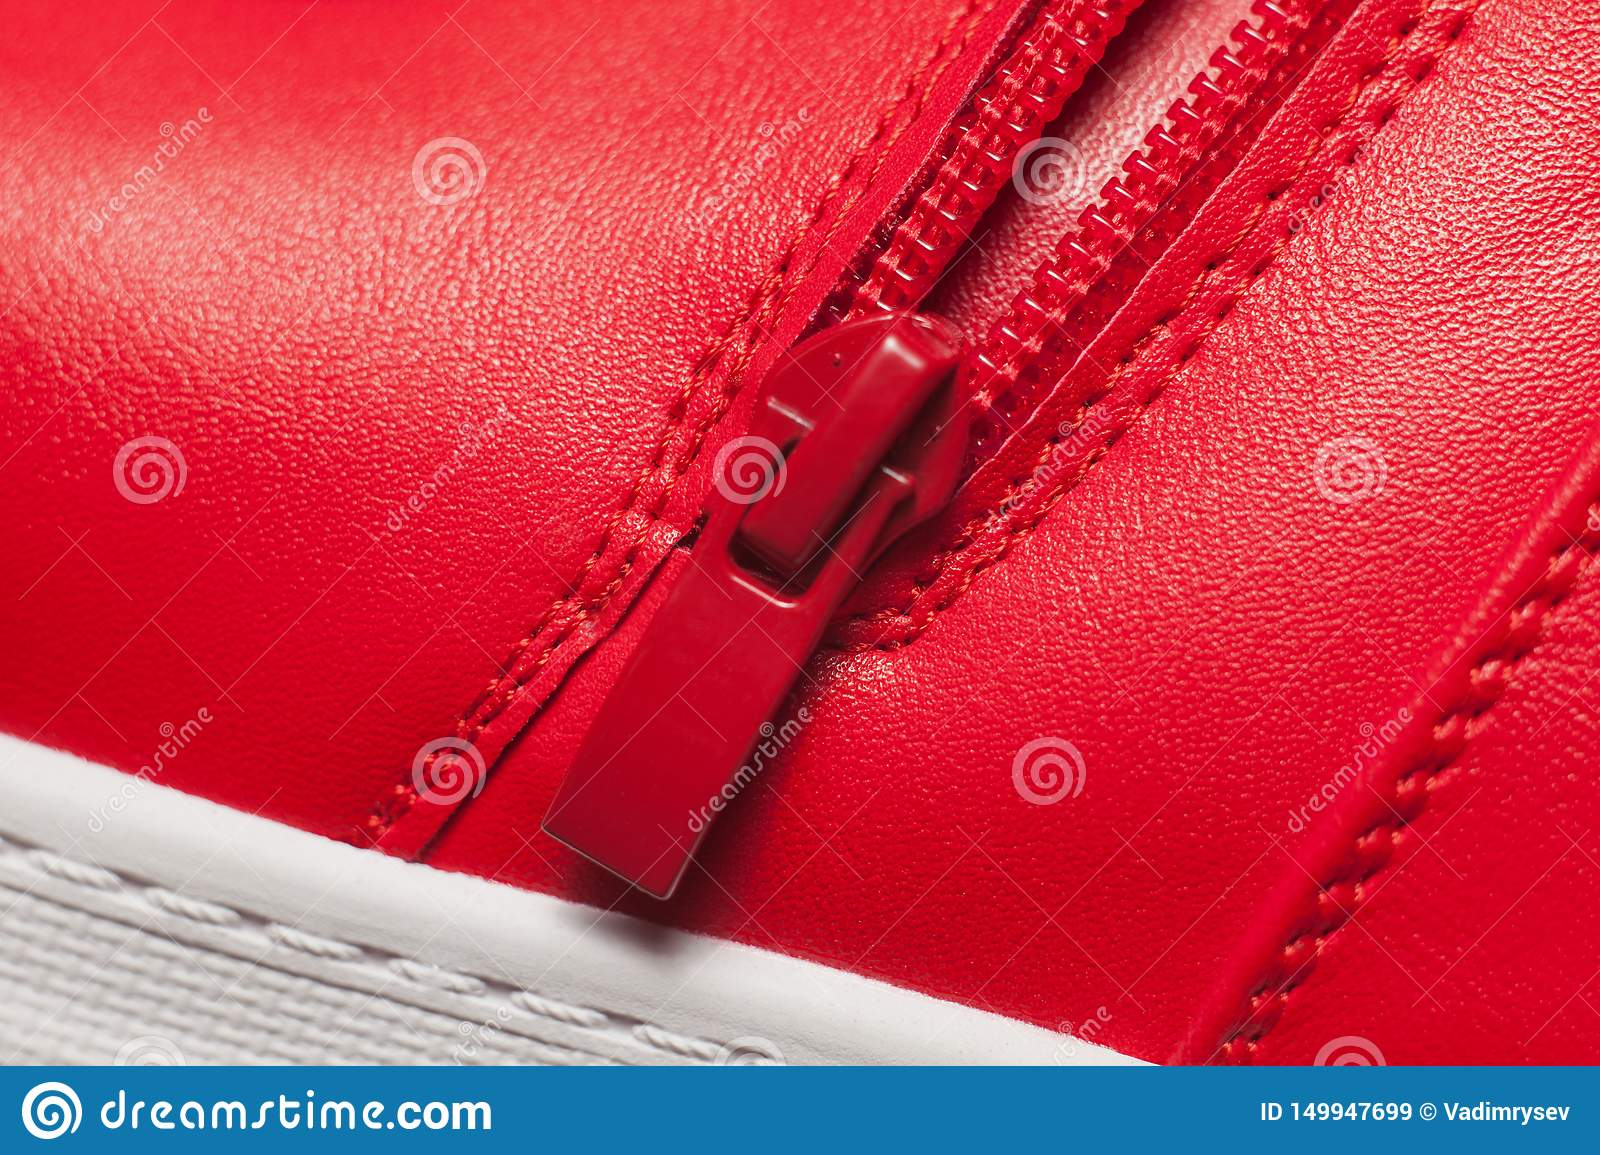 Red metal zipper on red sport boots